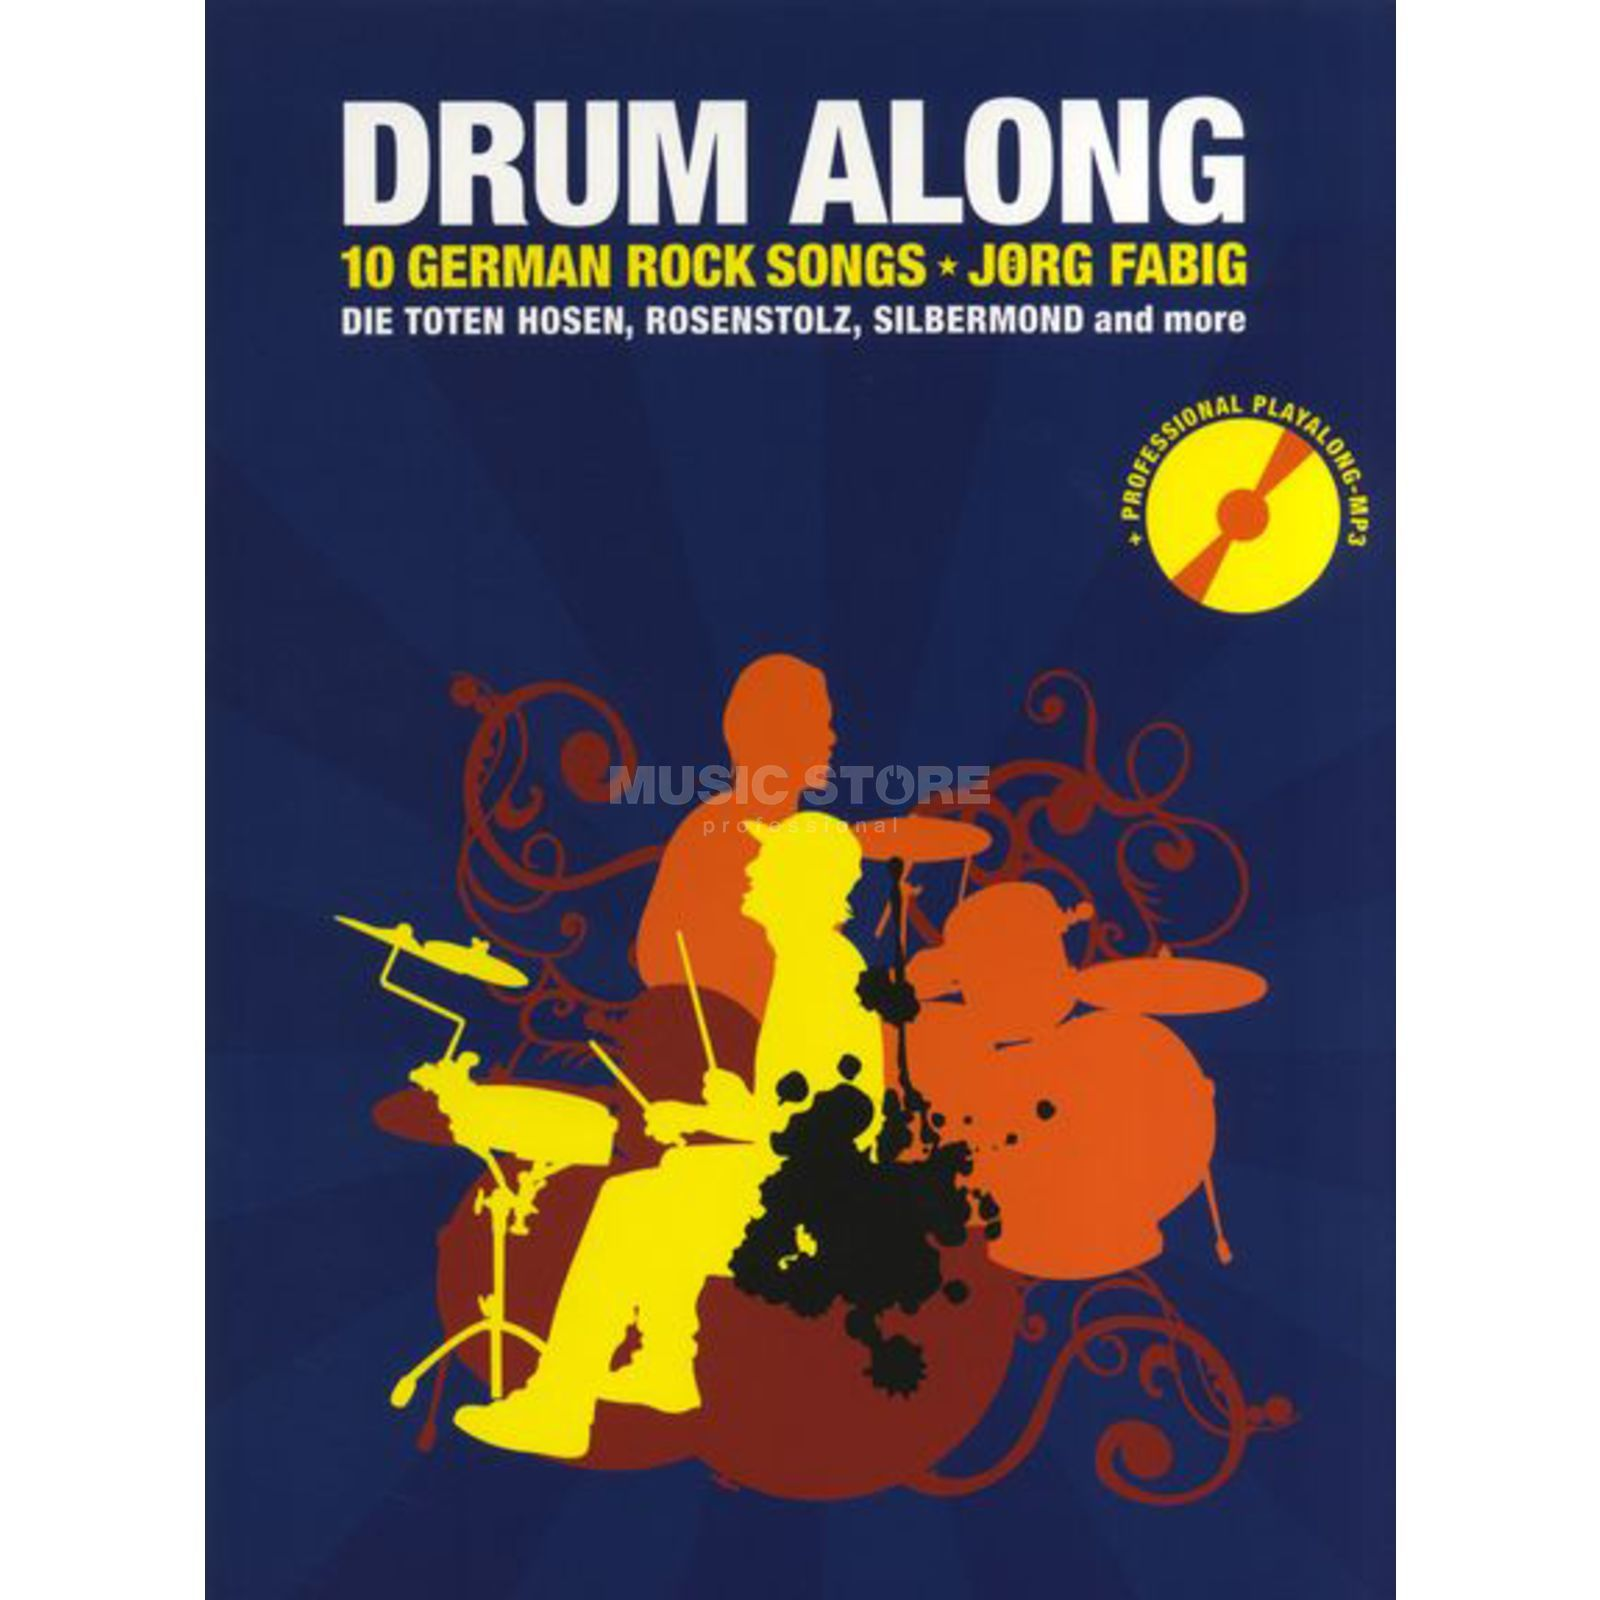 Bosworth Music Drum Along: 10 German Rock Songs, Jörg Fabig Produktbild